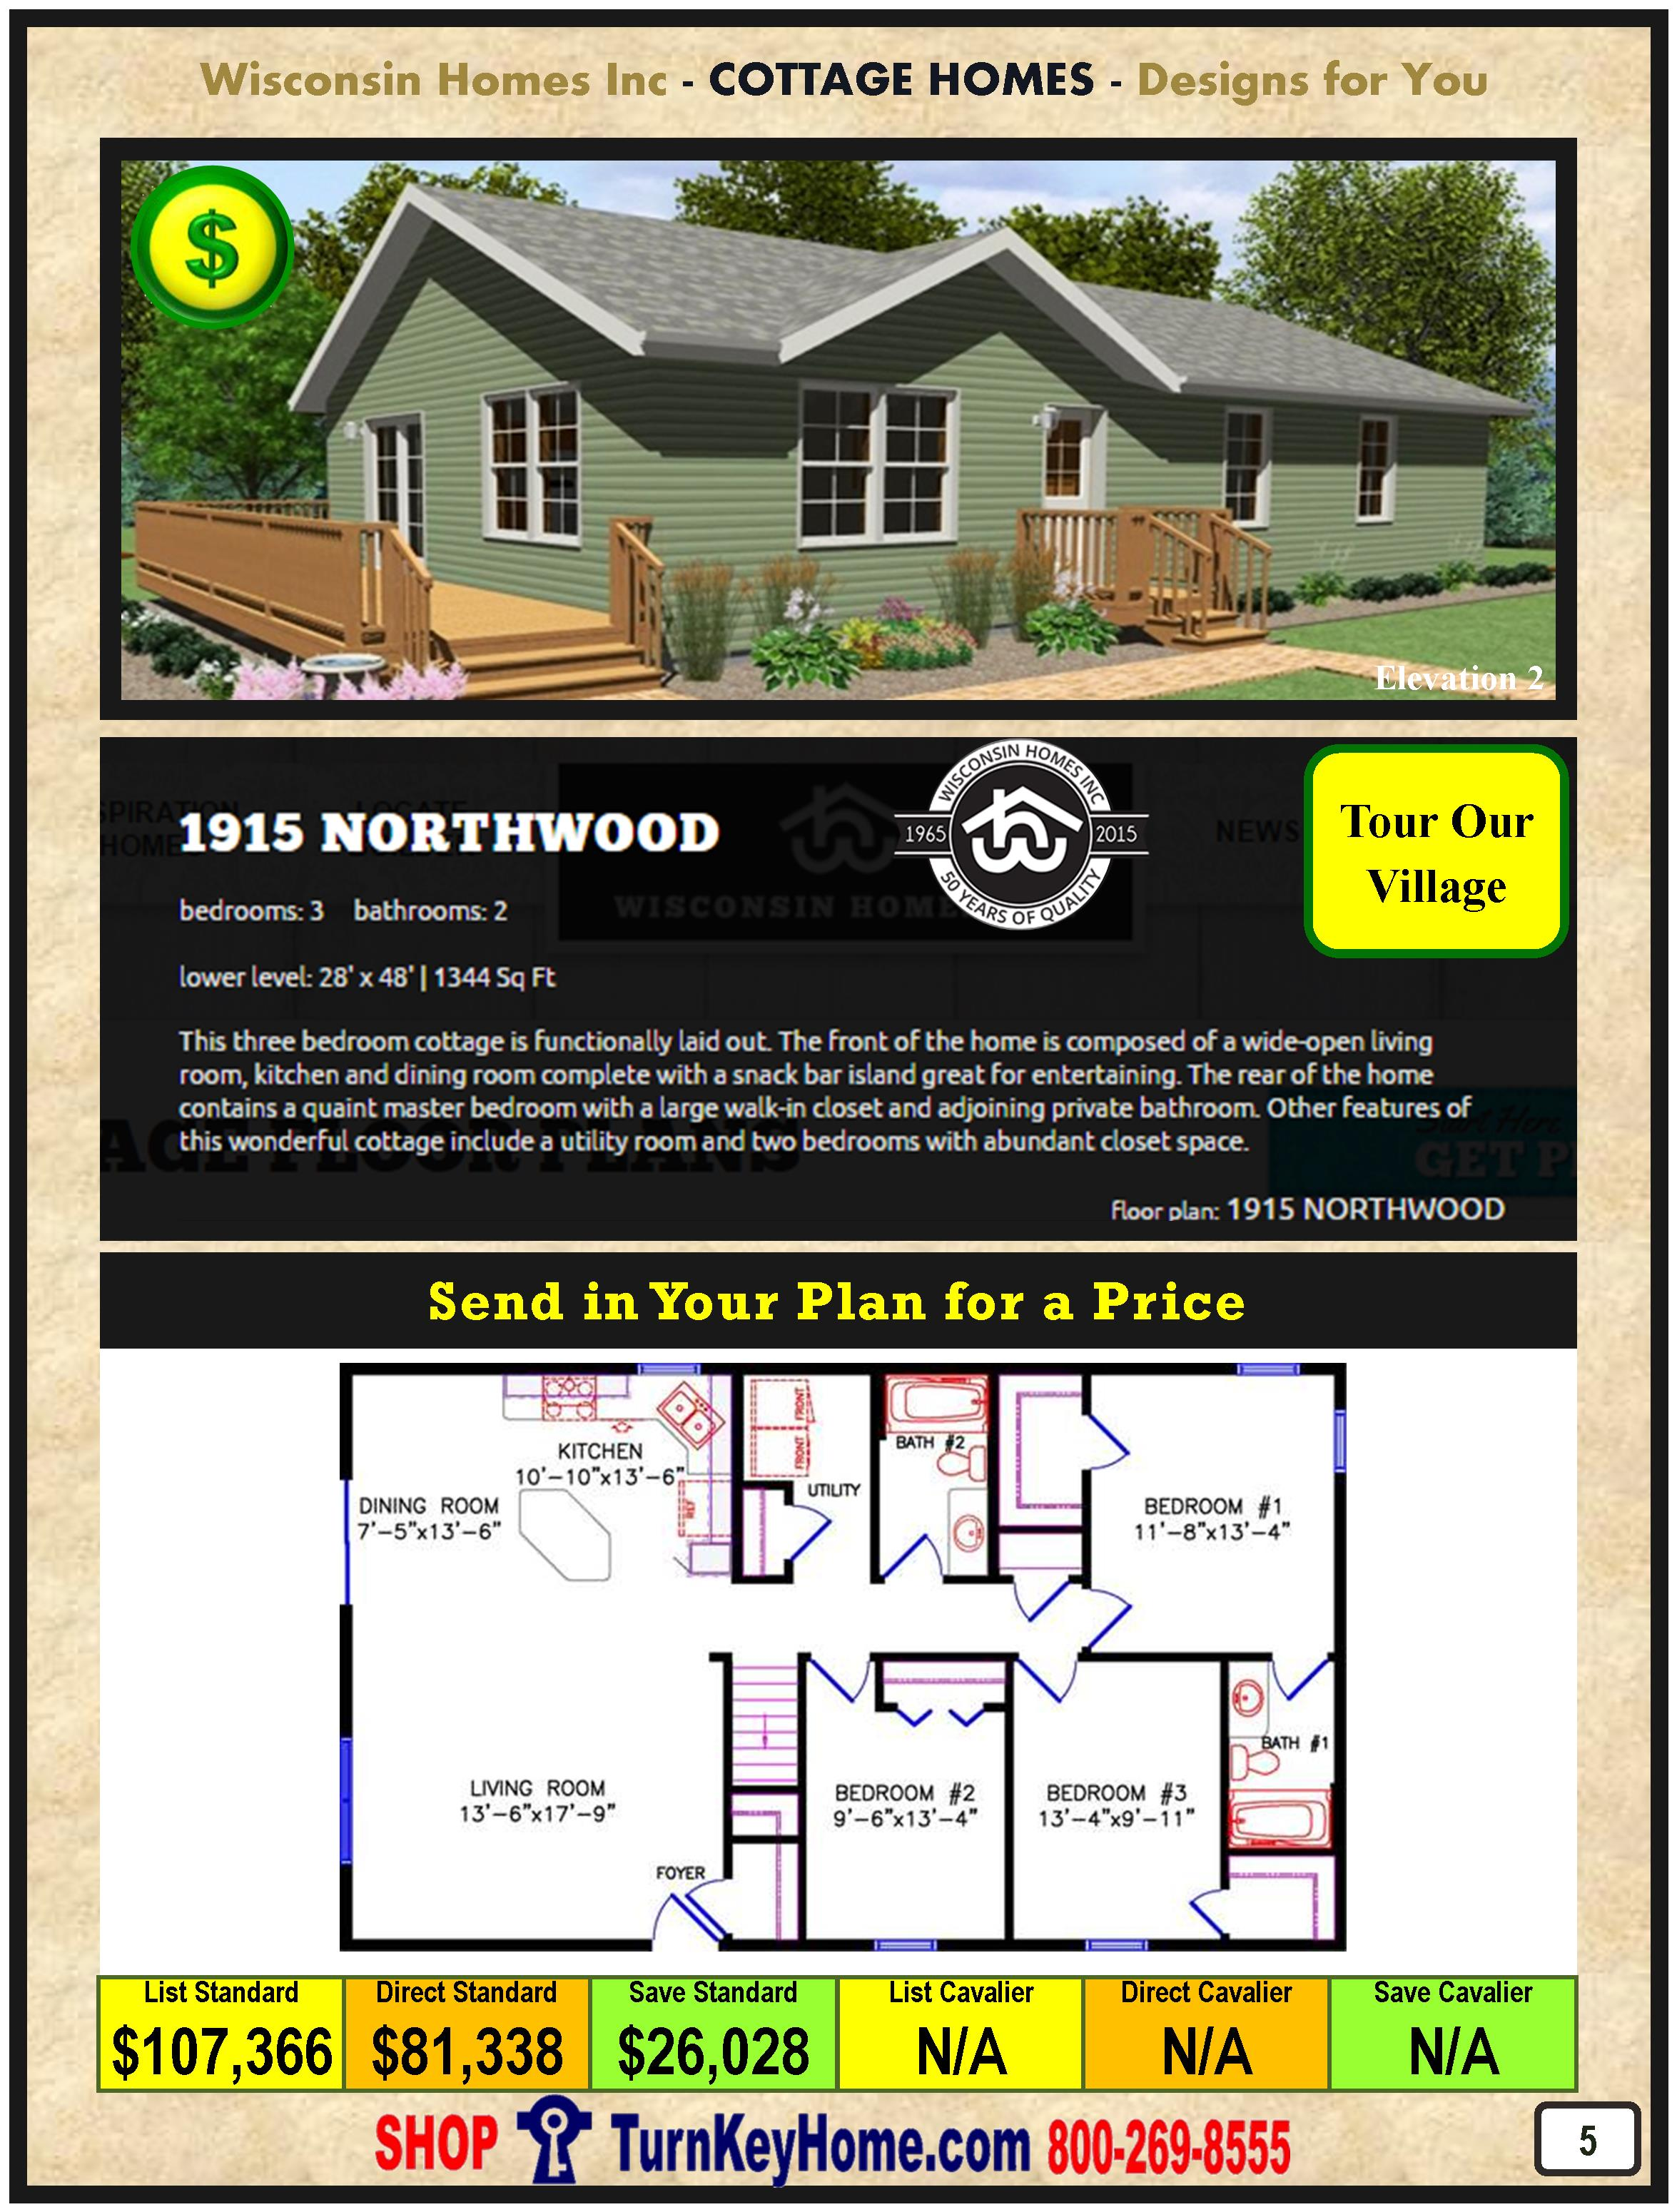 Modular.Home.Catalog.Wisconsin.Homes.Inc.Cottage.Northwood.1915.1.P5.1215